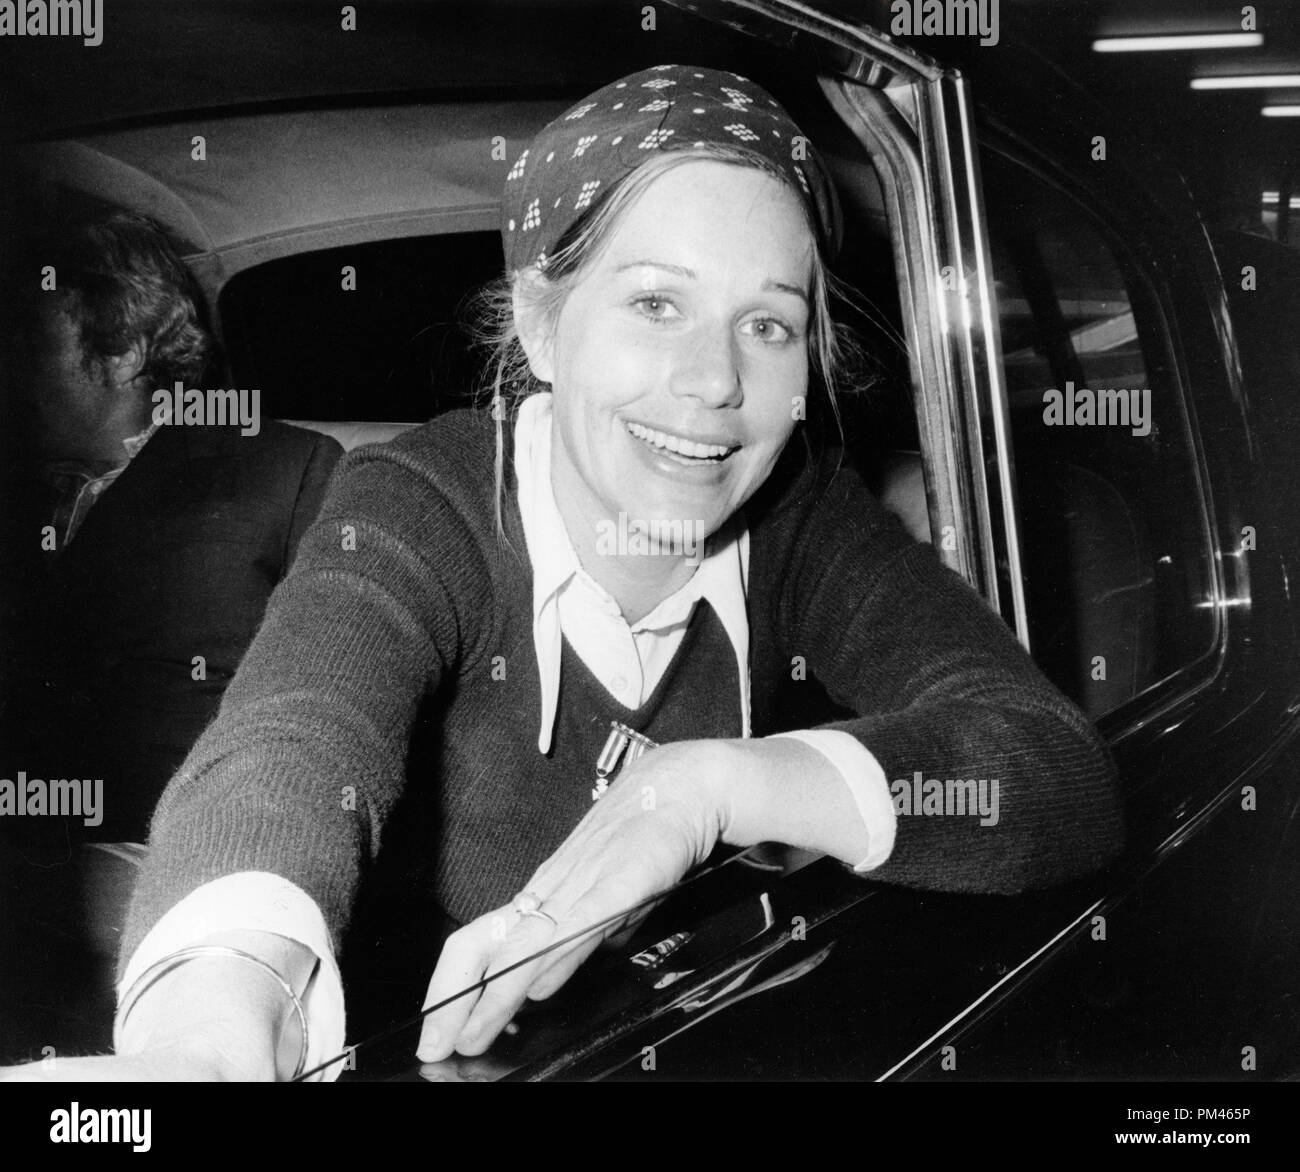 Sally Kellerman, May18,1970. File Reference #1057_001THA © JRC /The Hollywood Archive - All Rights Reserved. - Stock Image